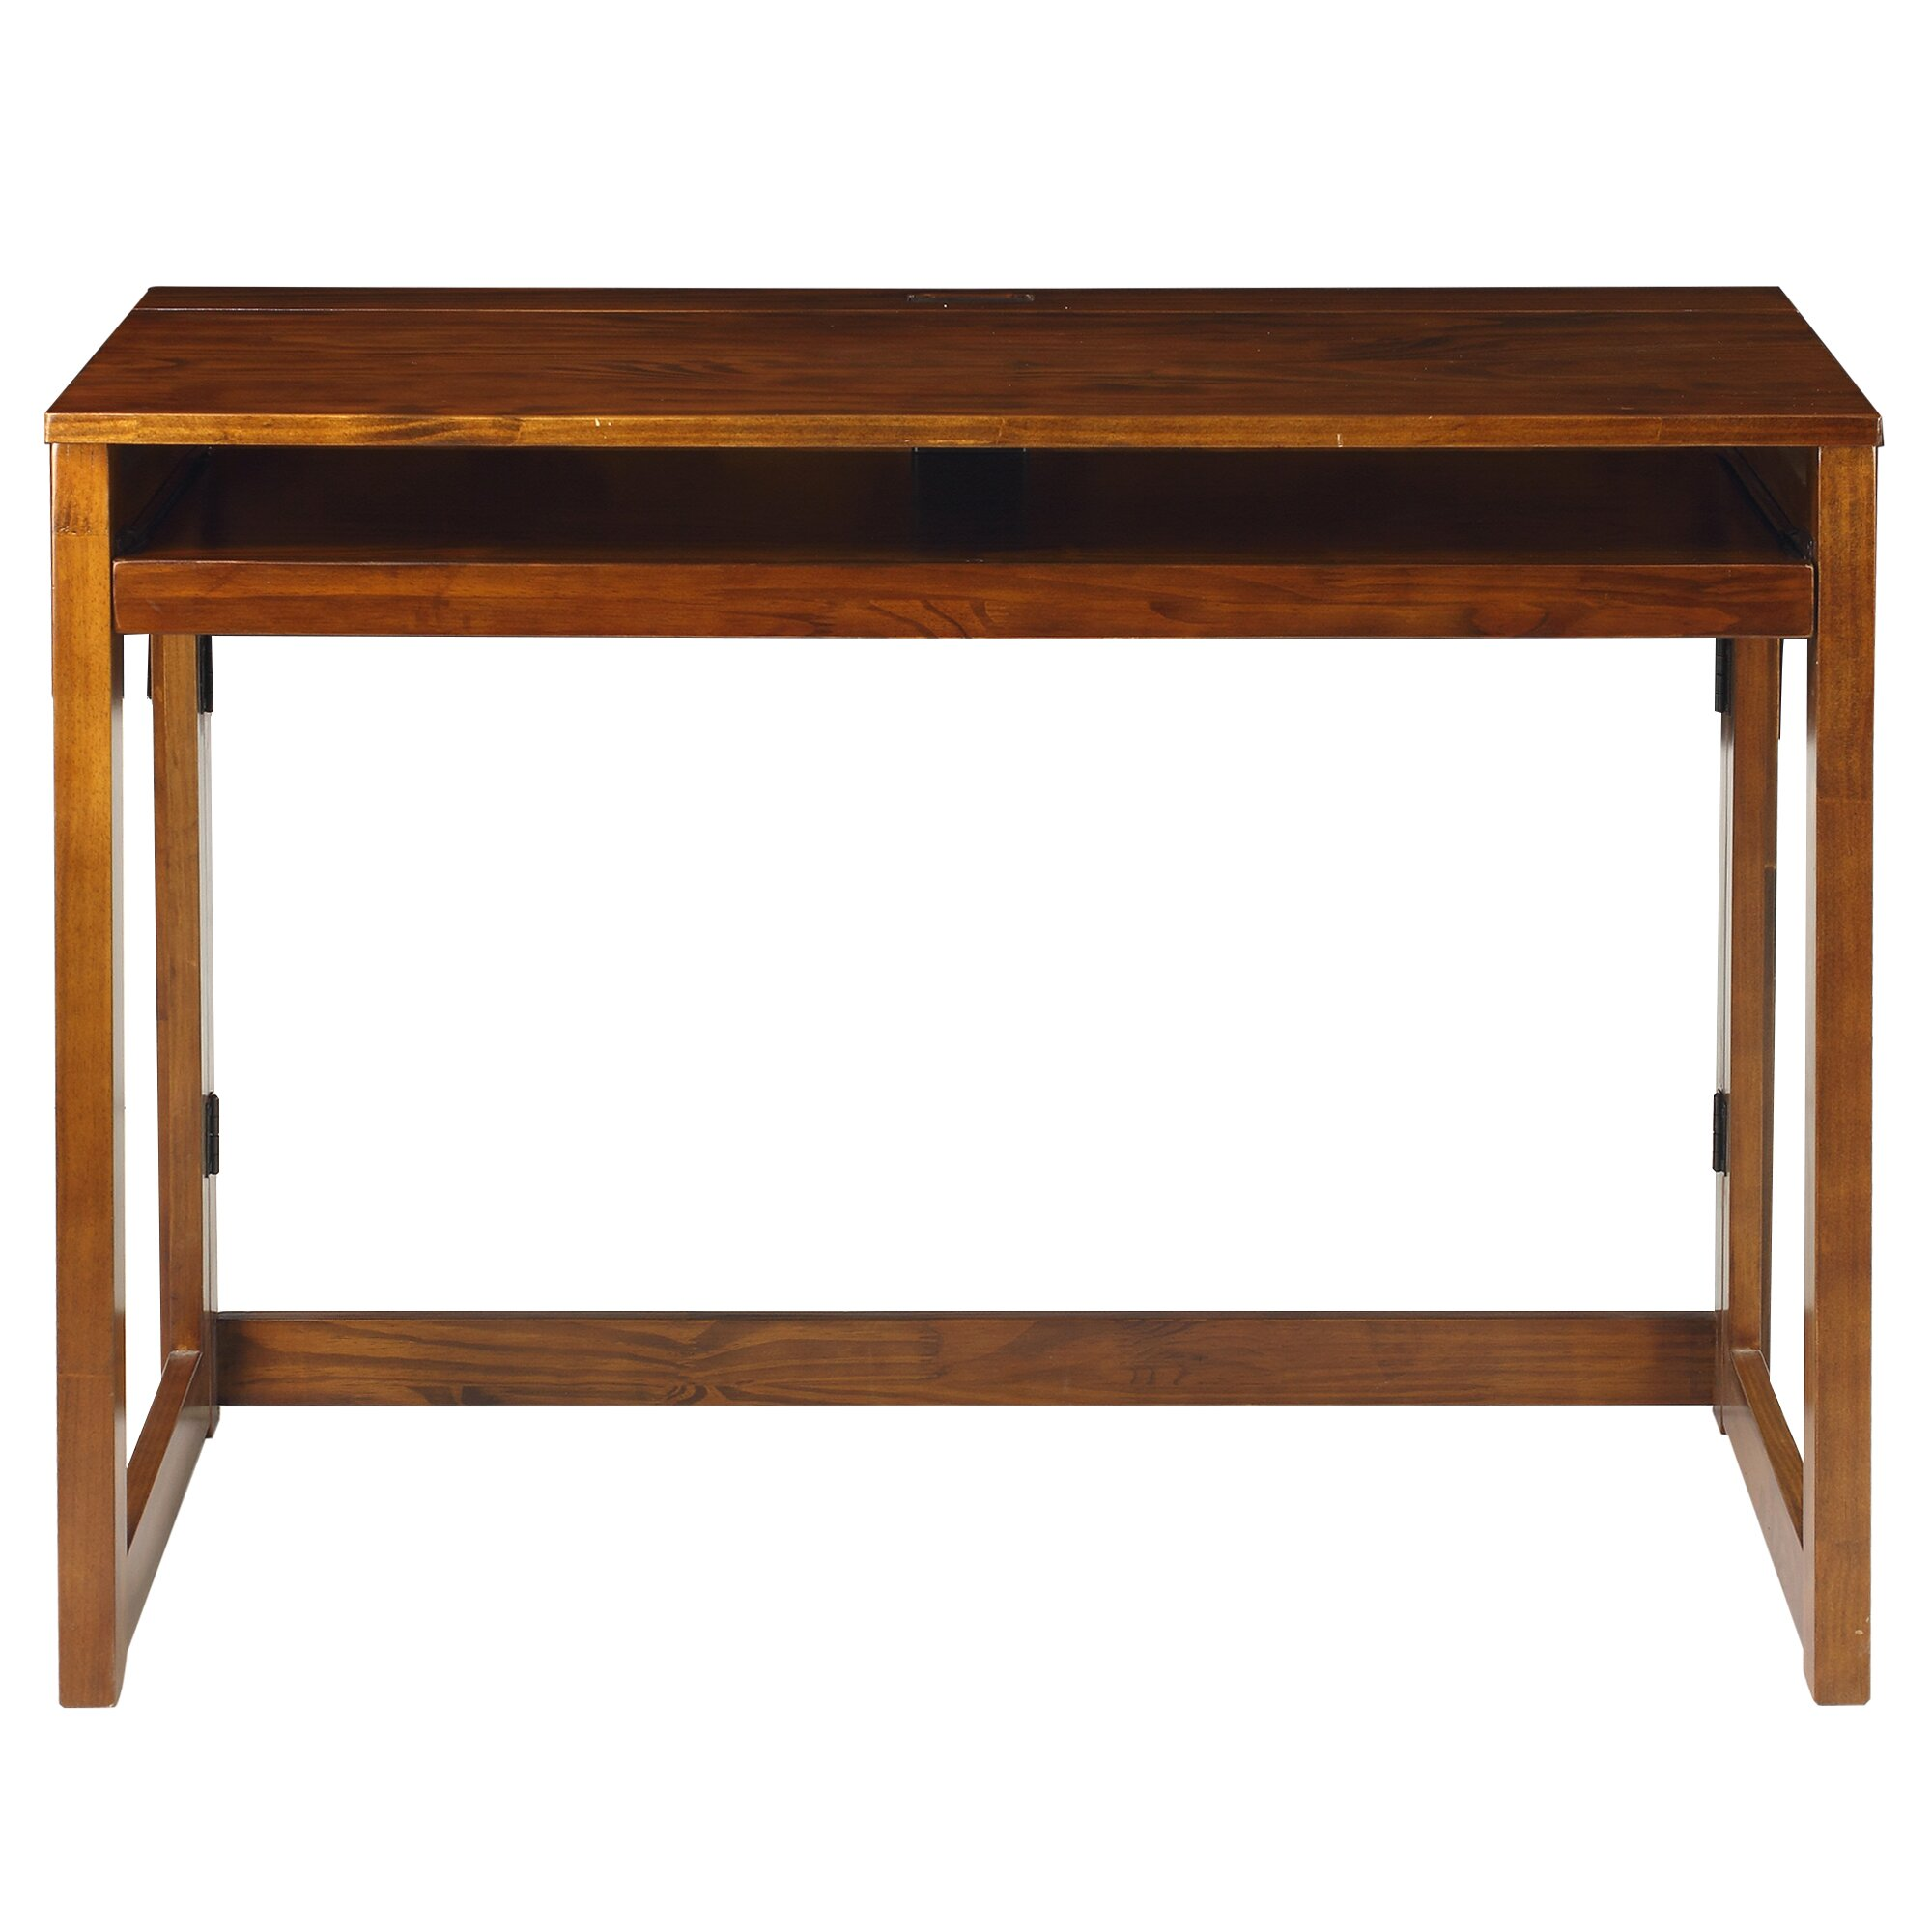 writing desk modern Edeskco offers the largest selection of modern executive desks, reception counters, conference tables & contemporary office furniture visit us today.